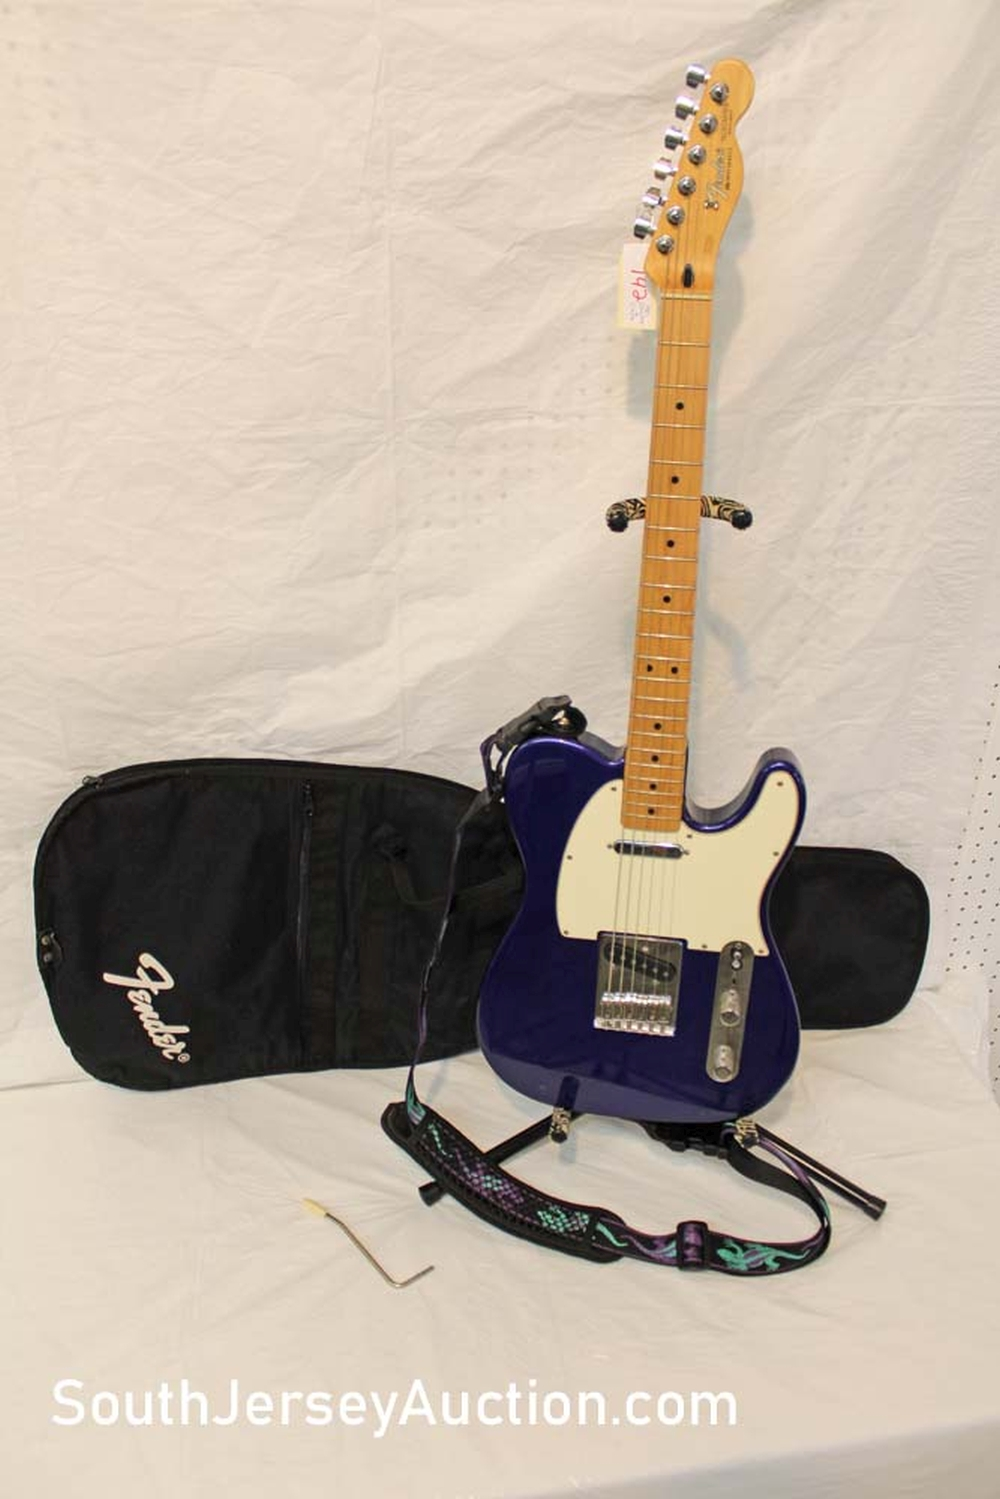 1998 Telecaster guitar in the odd color of purple/blue, made in Mexico, with strap, single and lipstick pickups, s/n MN9384022, with soft Fender case excellent condition